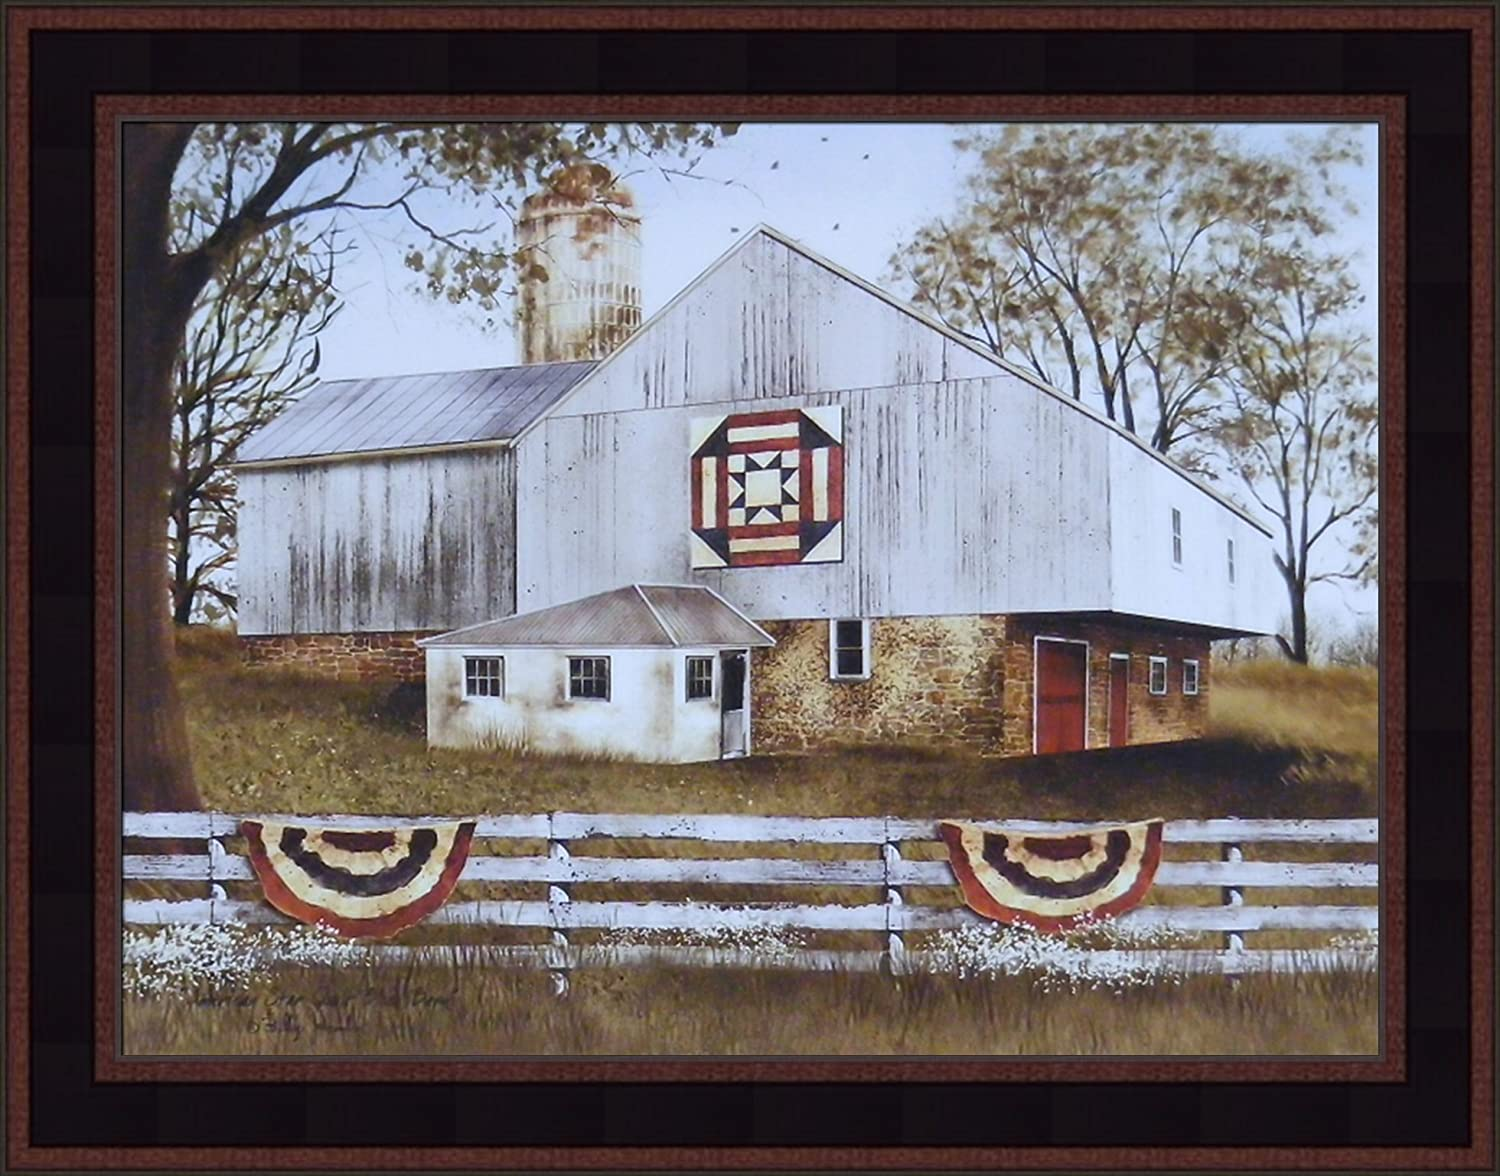 American Star Quilt Block Barn by Billy Jacobs 15x19 Americana Flag Farm Country Folk Art Print Wall Décor Framed Picture